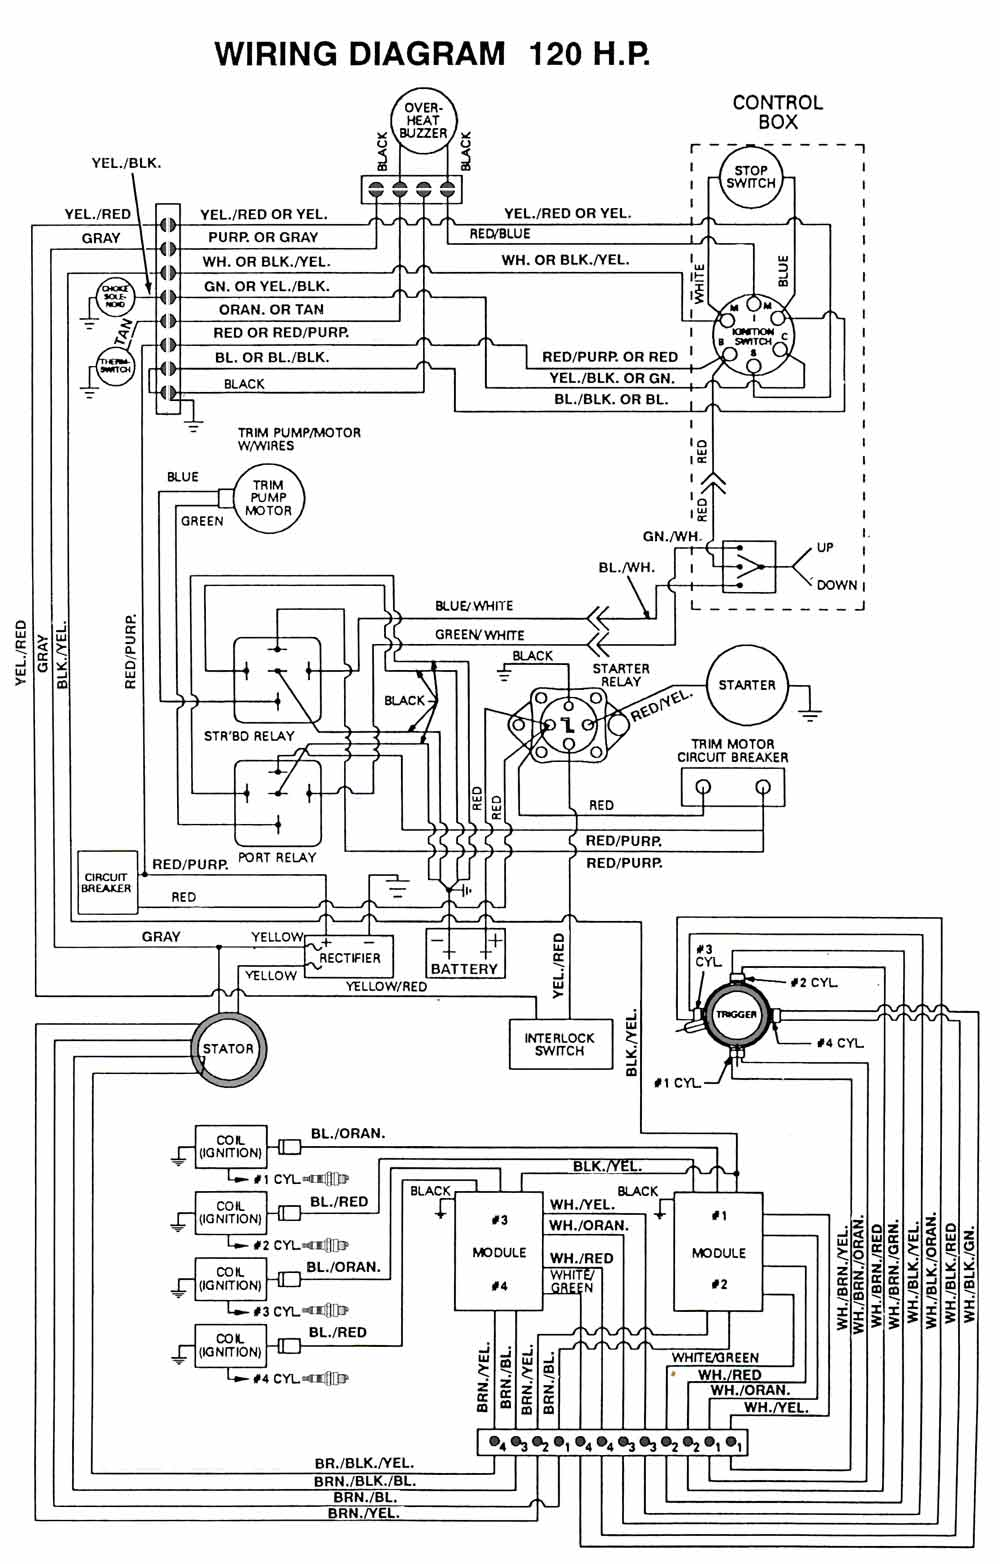 Chrysler Outboard Wiring Diagram Archive Of Automotive Fuel System Moreover Electric Garage Heater Diagrams Mastertech Marine Rh Maxrules Com